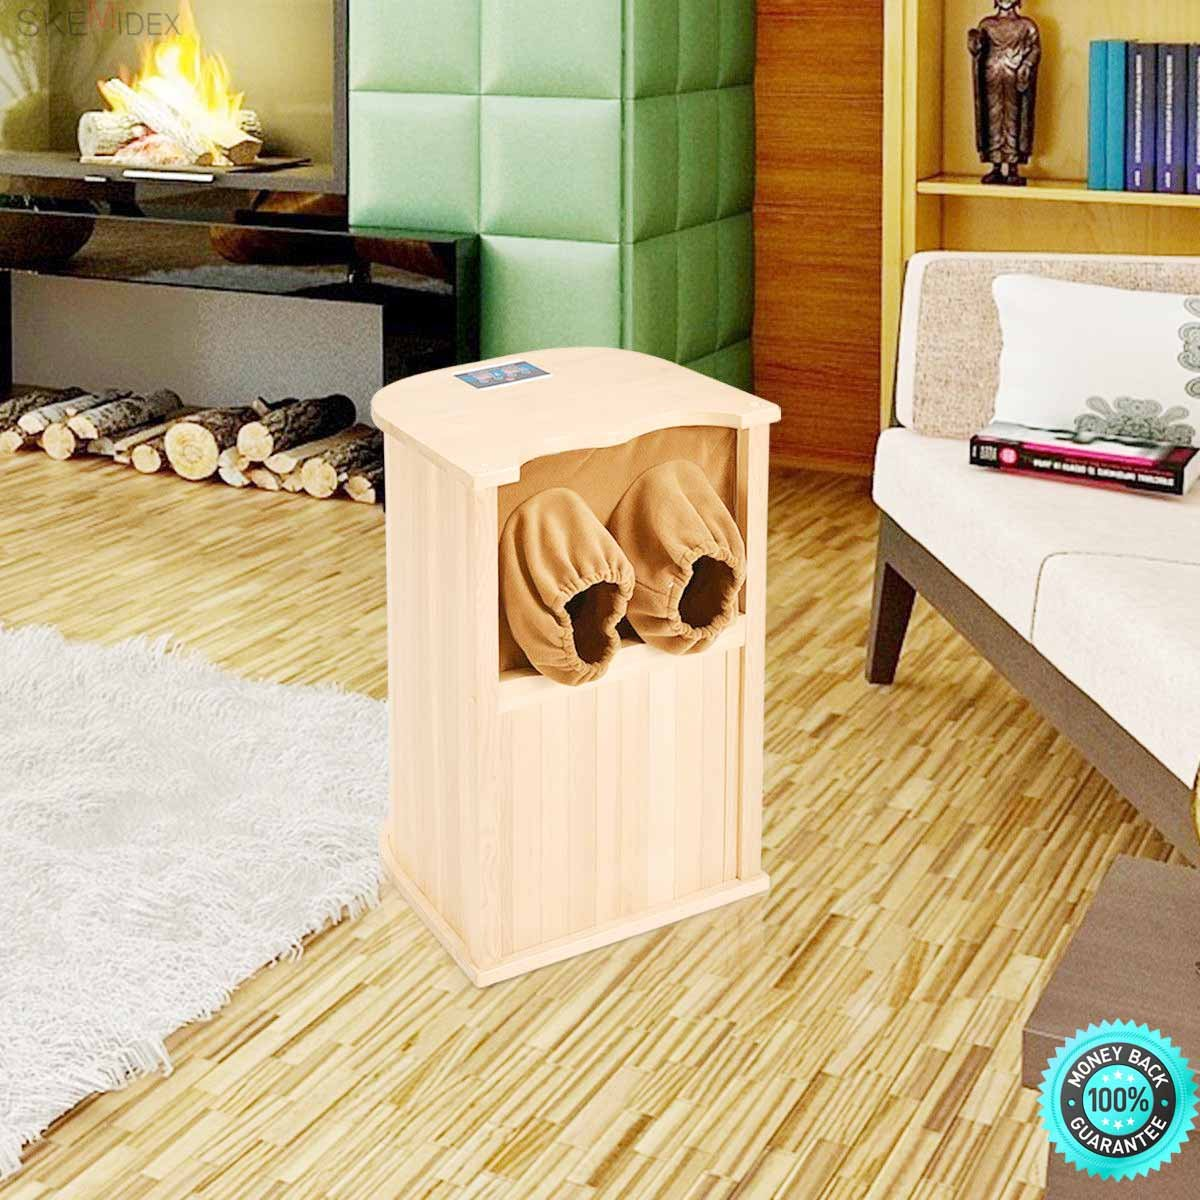 SKEMiDEX---Infrared Wooden Foot Sauna Dry Bath Health Spa & Therapy w/ Carbon Fiber Heaters Instead of traditional sauna methods, this infrared foot sauna uses the power of tourmaline stones